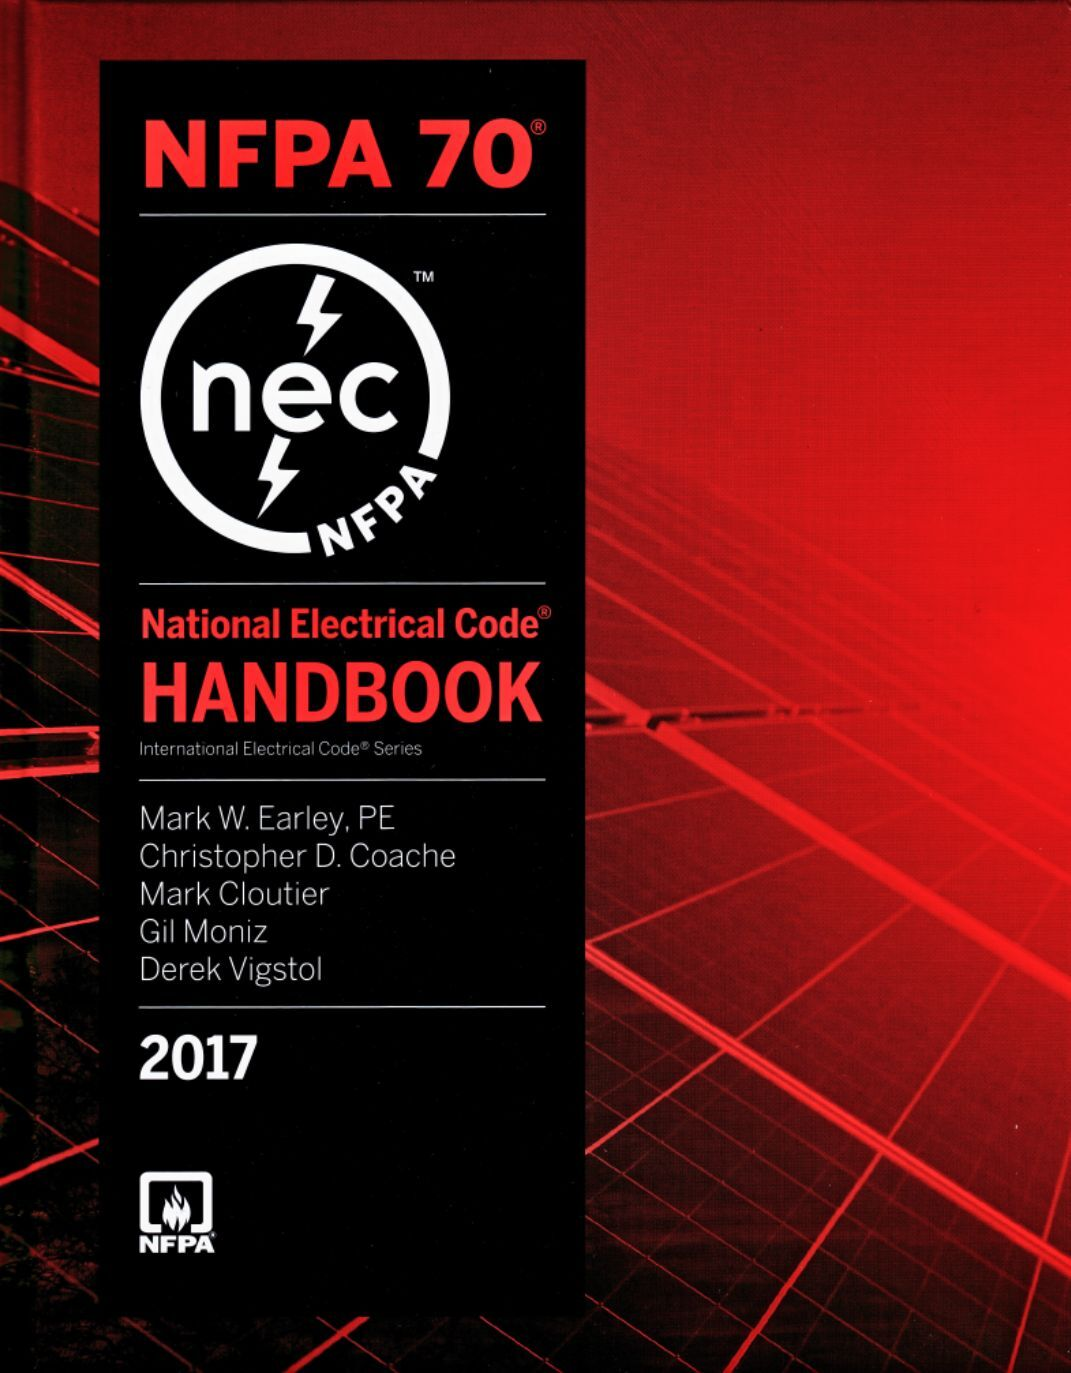 NFPA 70 Handbook : National Electrical Code, NEC, Handbook, 2017 Edition, New